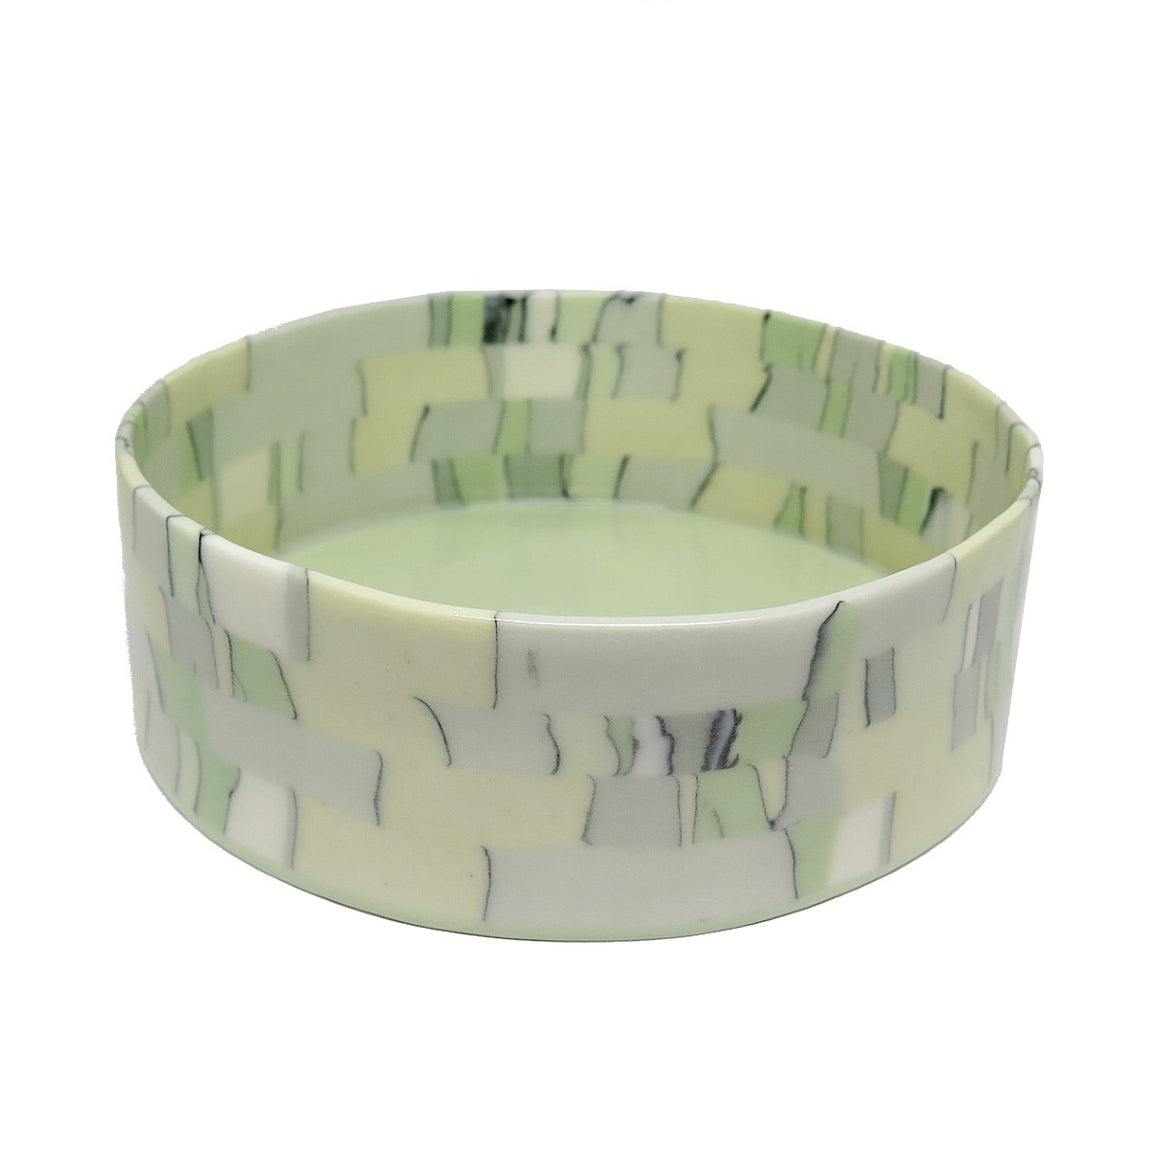 Fruit Bowl | Nerikomi | Made by Anne Mossman | Pastel Green, Yellow, Grey & White